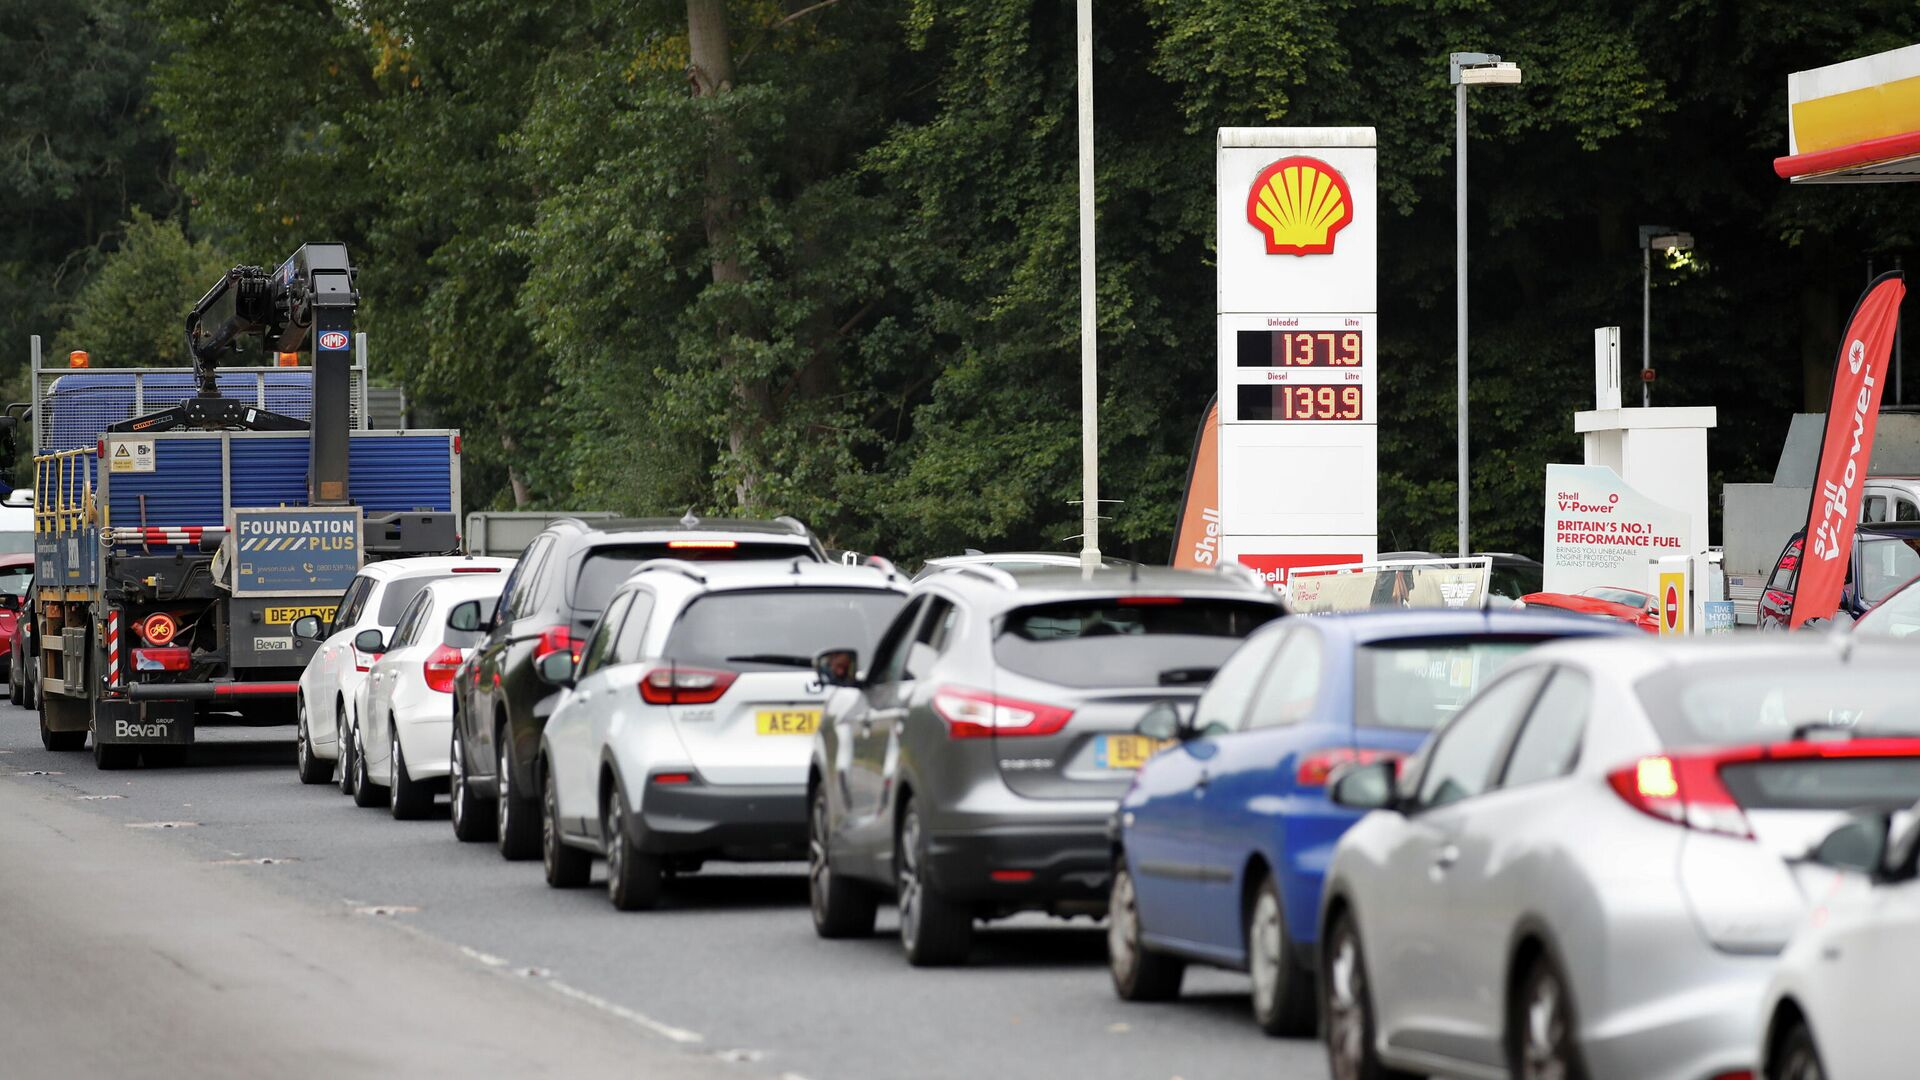 Vehicles queue to refill outside a Shell fuel station in Redbourn, Britain, September 25, 2021. REUTERS/Peter Cziborra - Sputnik International, 1920, 27.09.2021